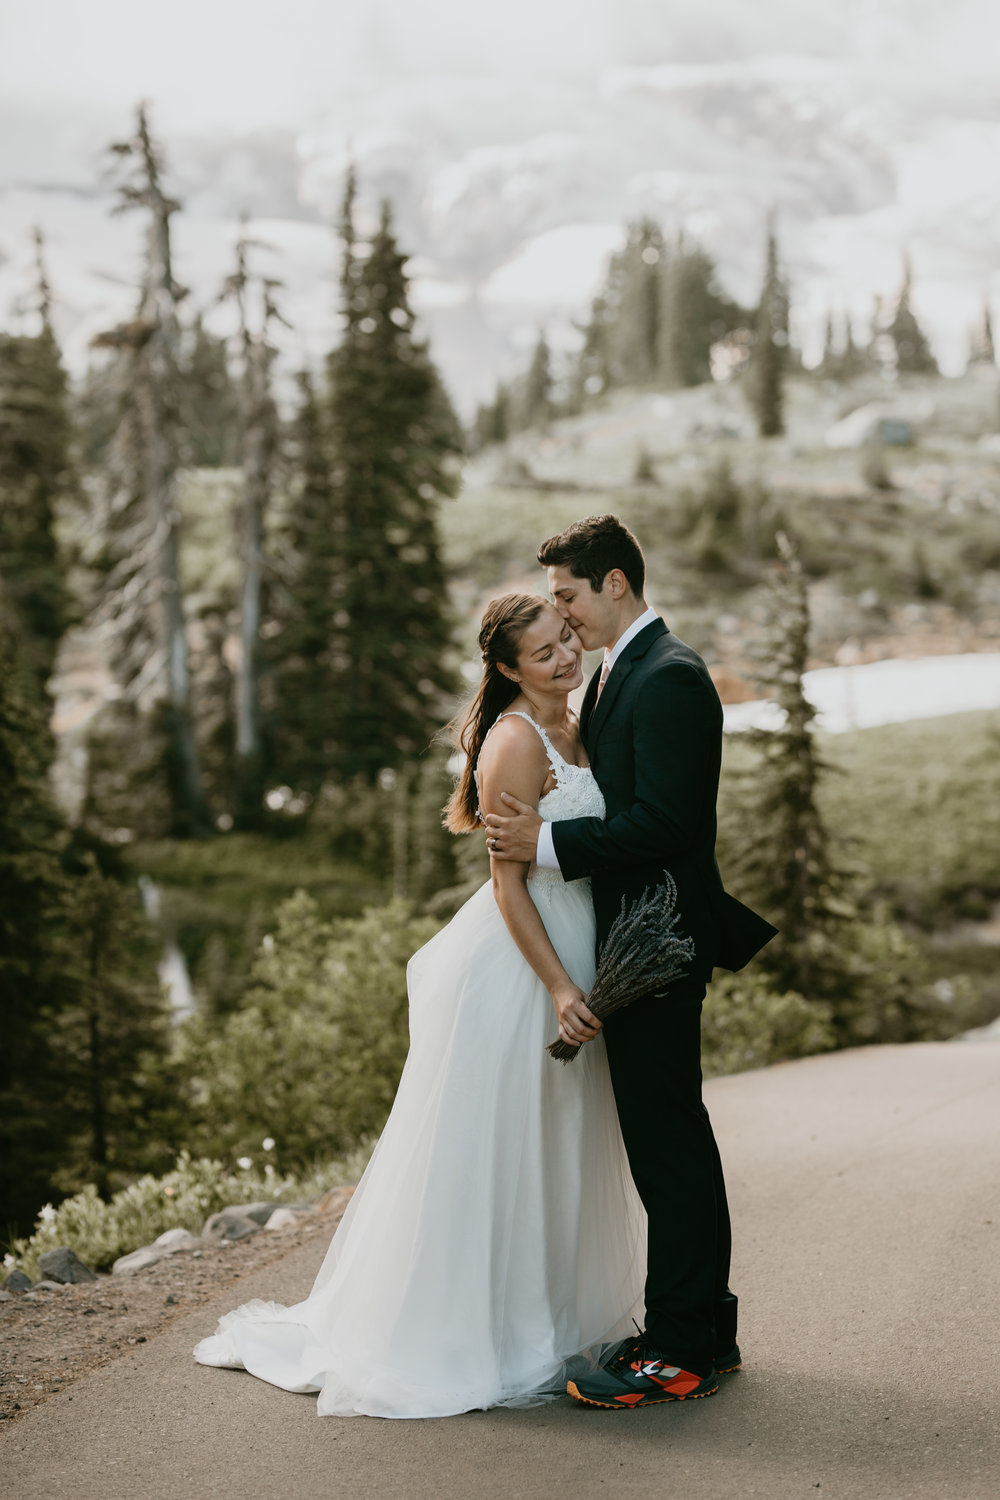 Nicole-Daacke-Photography-Mt-Rainier-elopement-photographer-washington-mountain-epic-wedding-photography-wildflowers-at-rainier-pine-tree-cloudy-summer-day-at-mountain-rainier-1.jpg